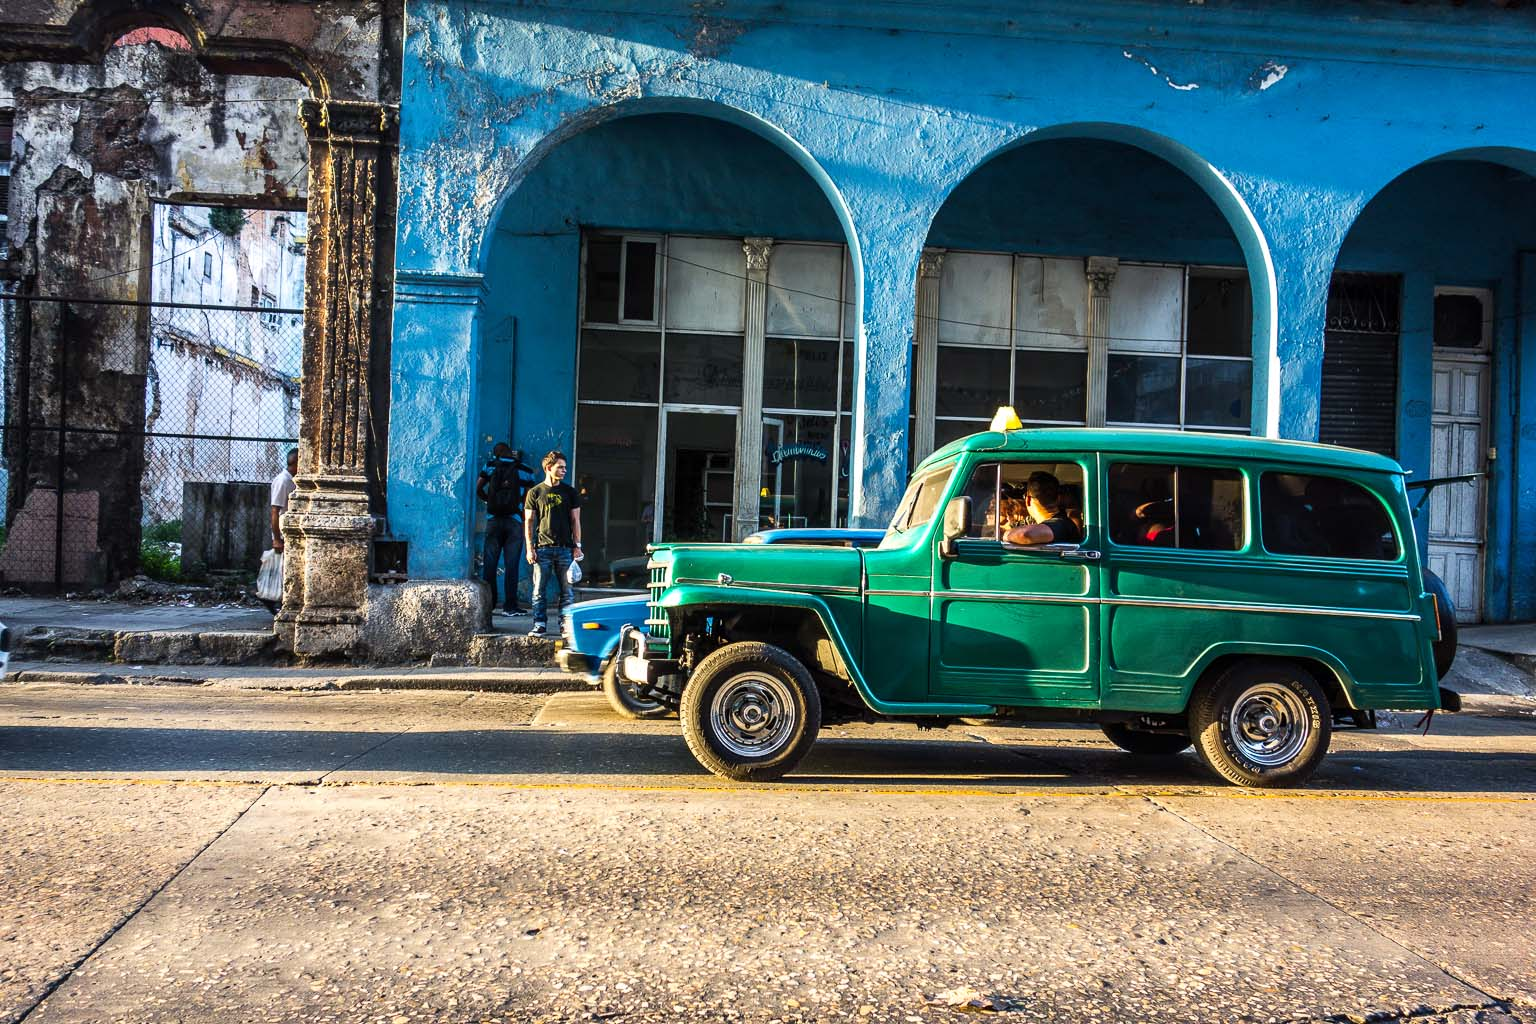 Green jeep on Calle Monte Havana Cuba